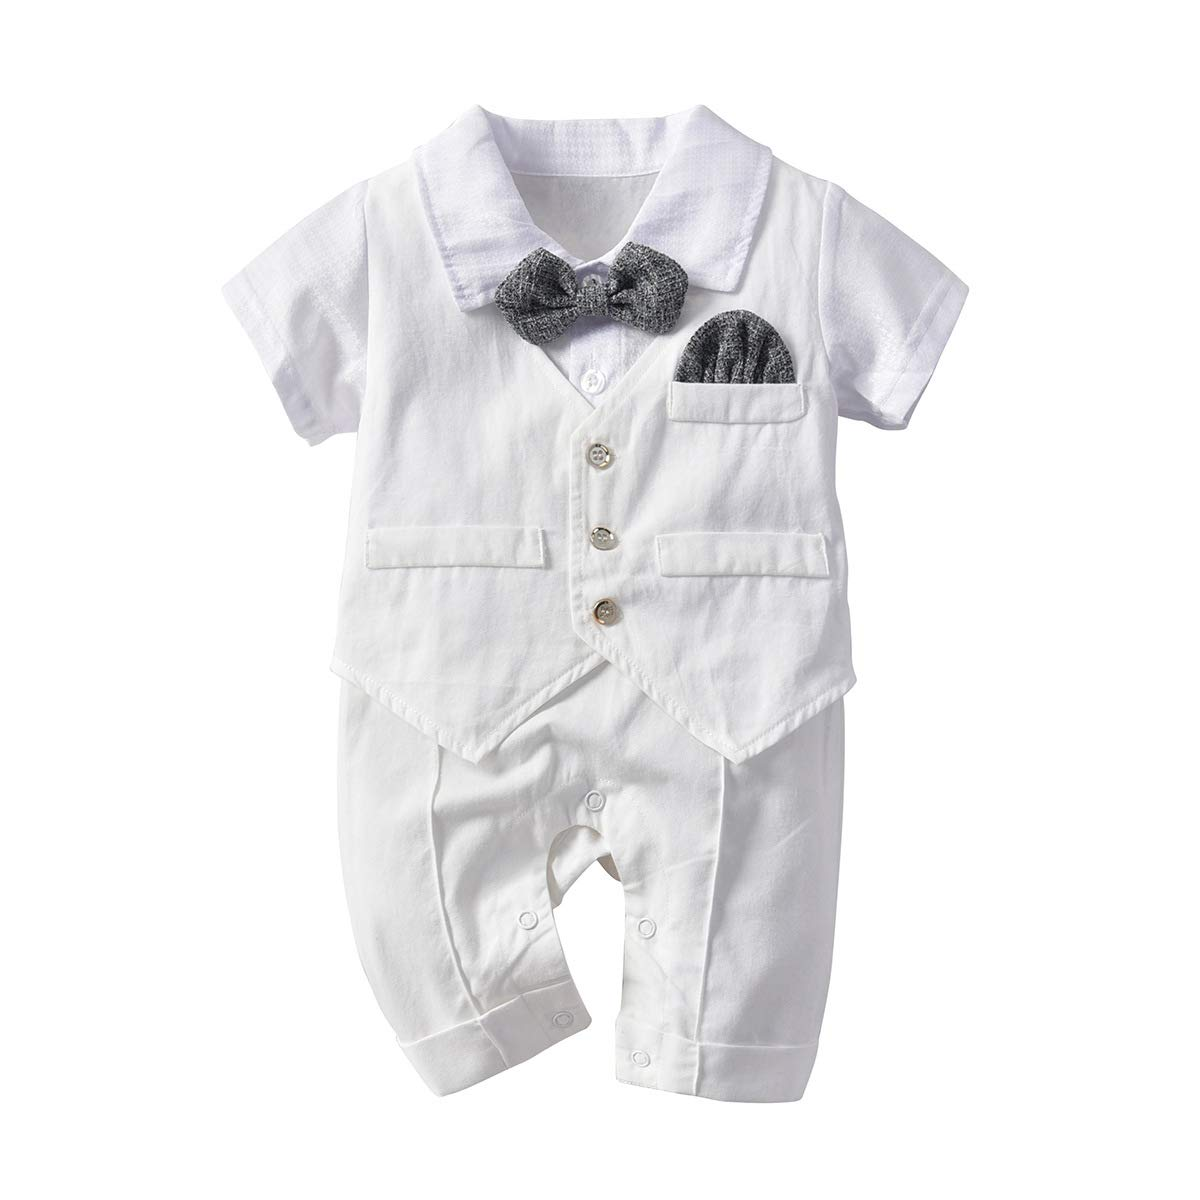 DaMohony Baby Boy Gentleman Romper Baby False Two Piece Romper Gentleman Bow Tie Jumpsuit for 0-24 Months